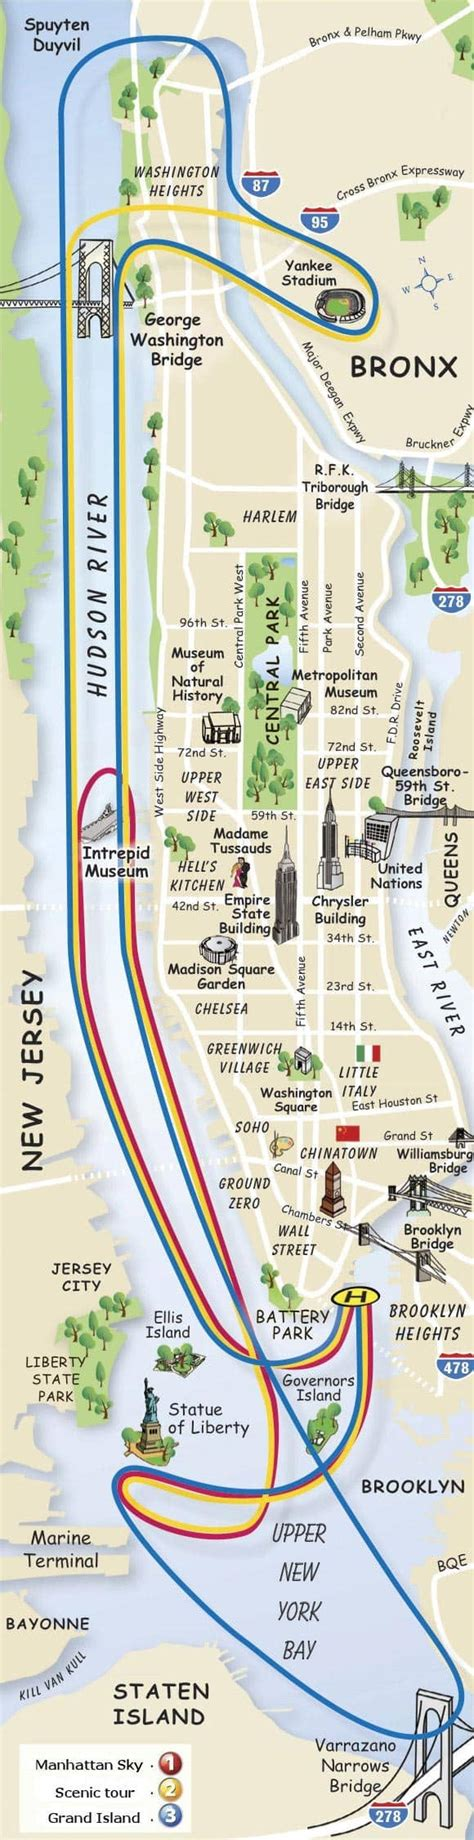 New York Helicopter Tour Routes - NewYorkCity